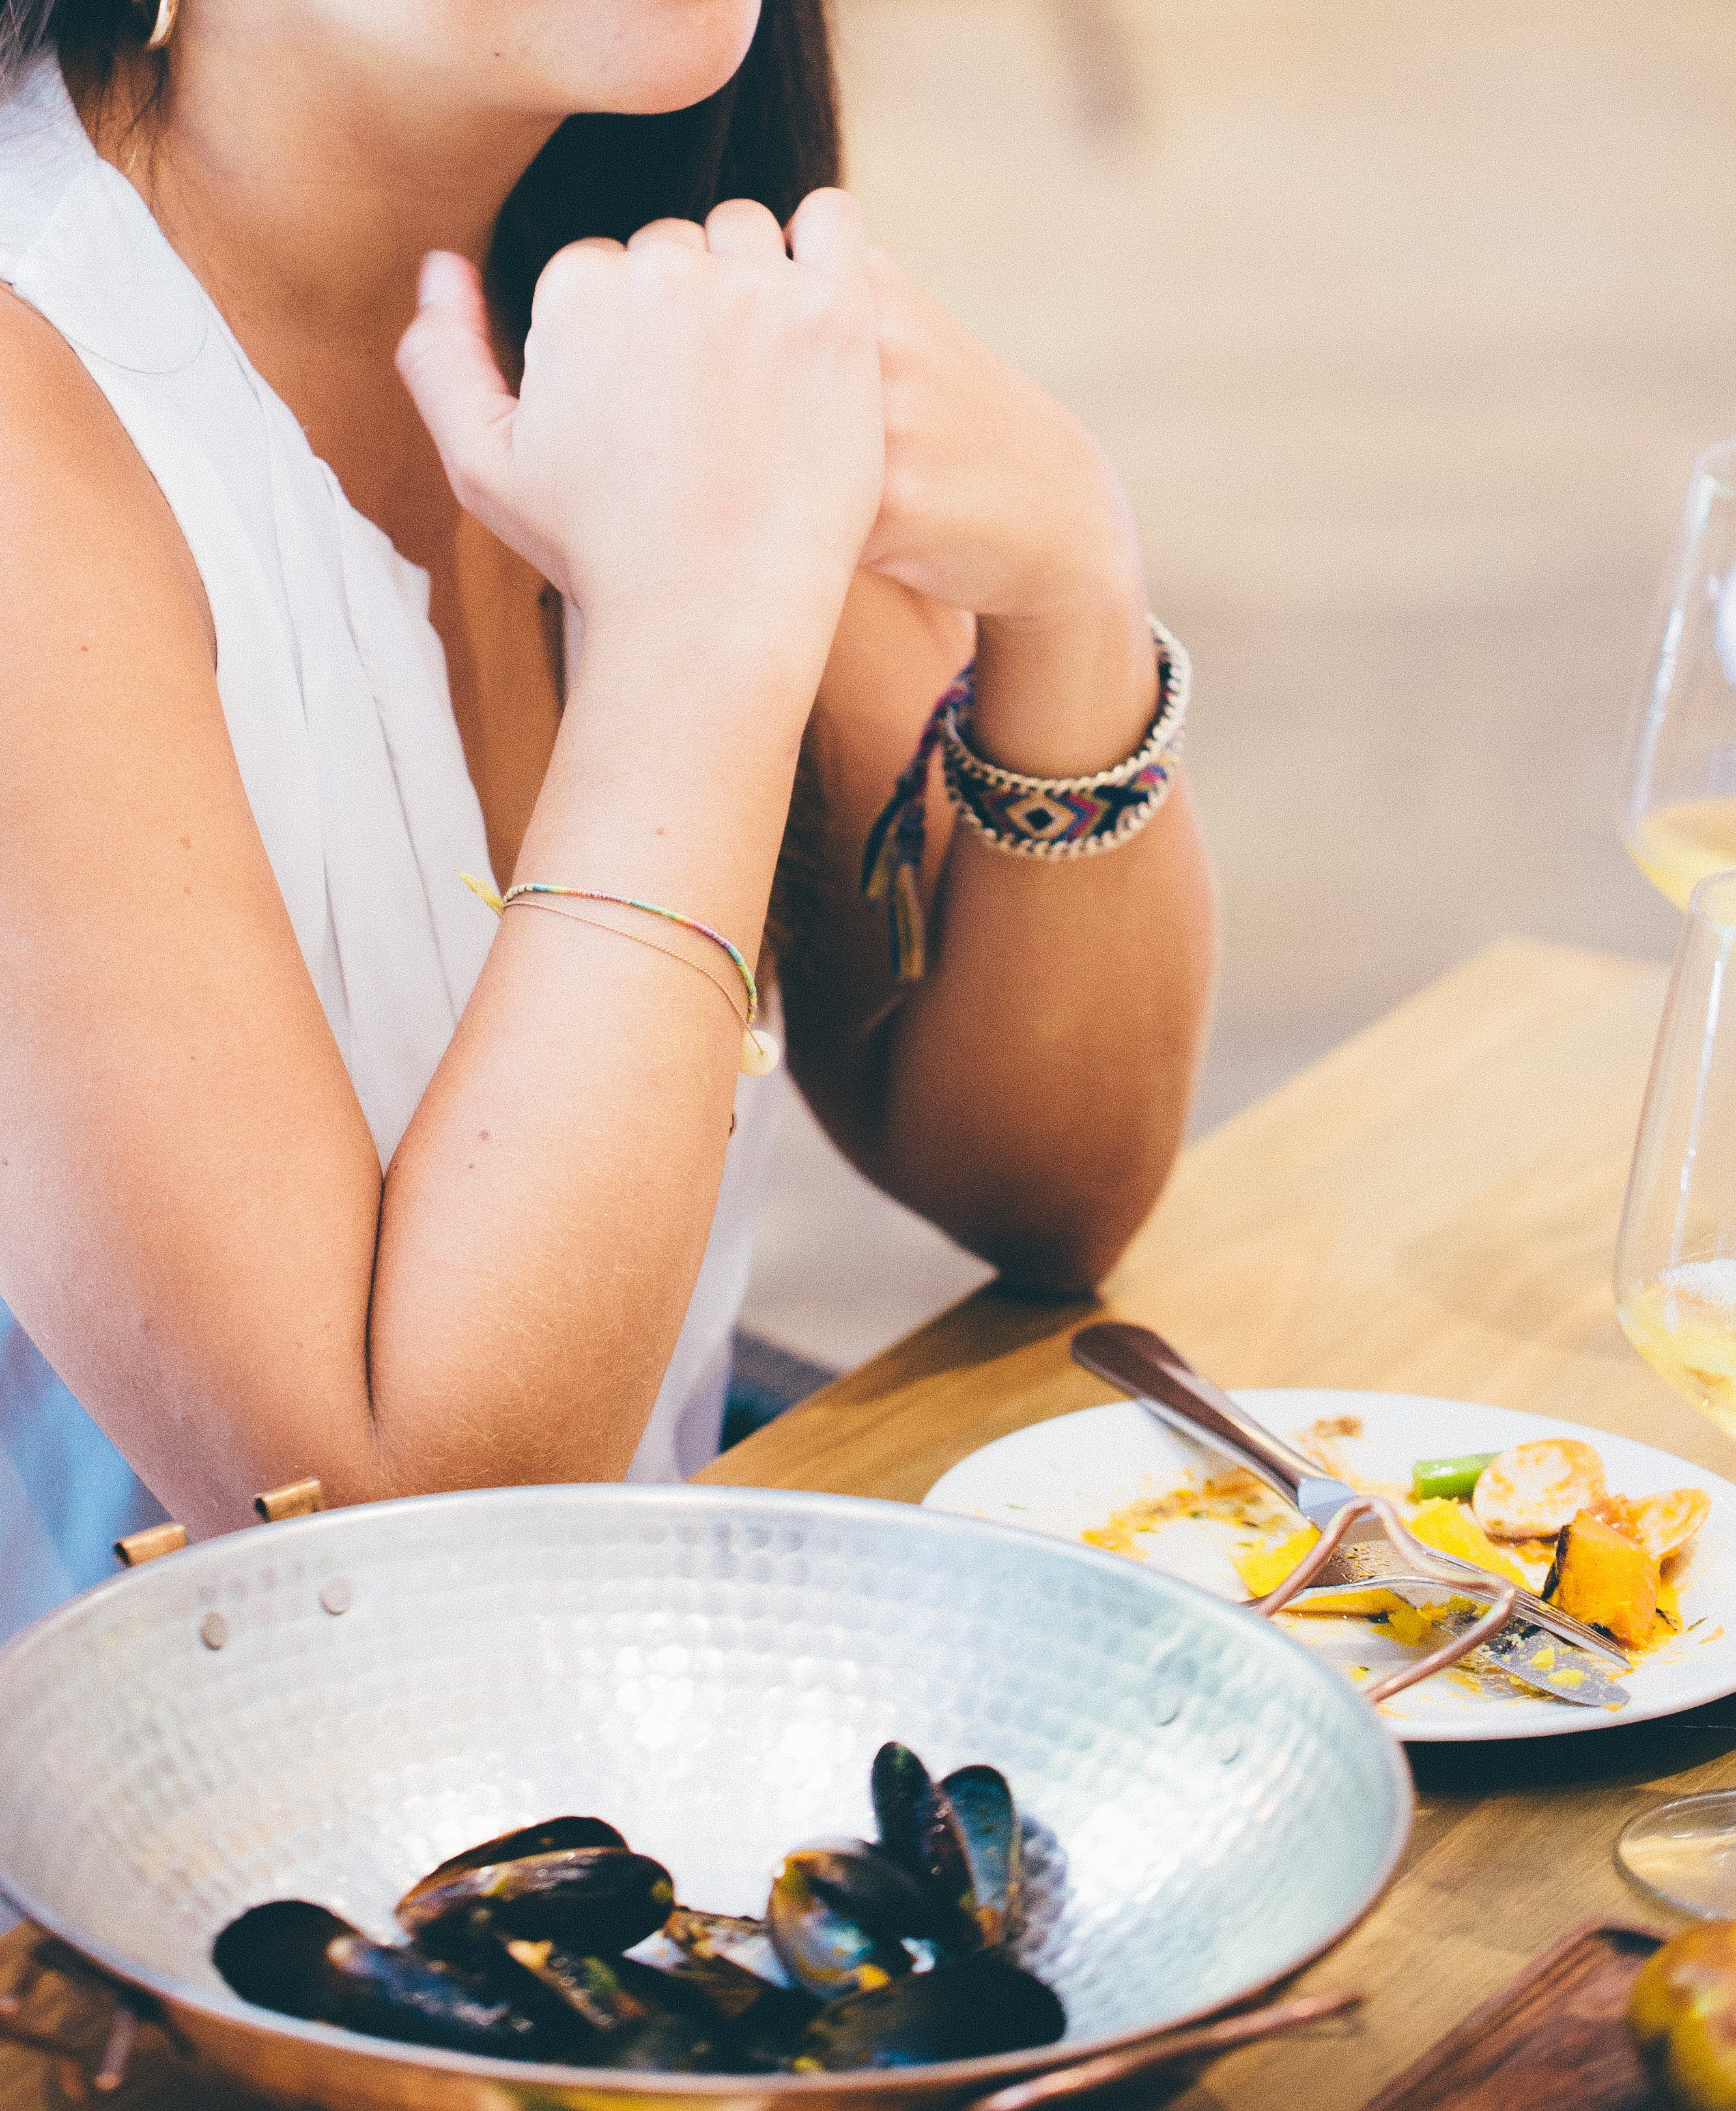 Woman Wearing White Deep V-neck Sleeveless Top Sitting on Chair Near Table